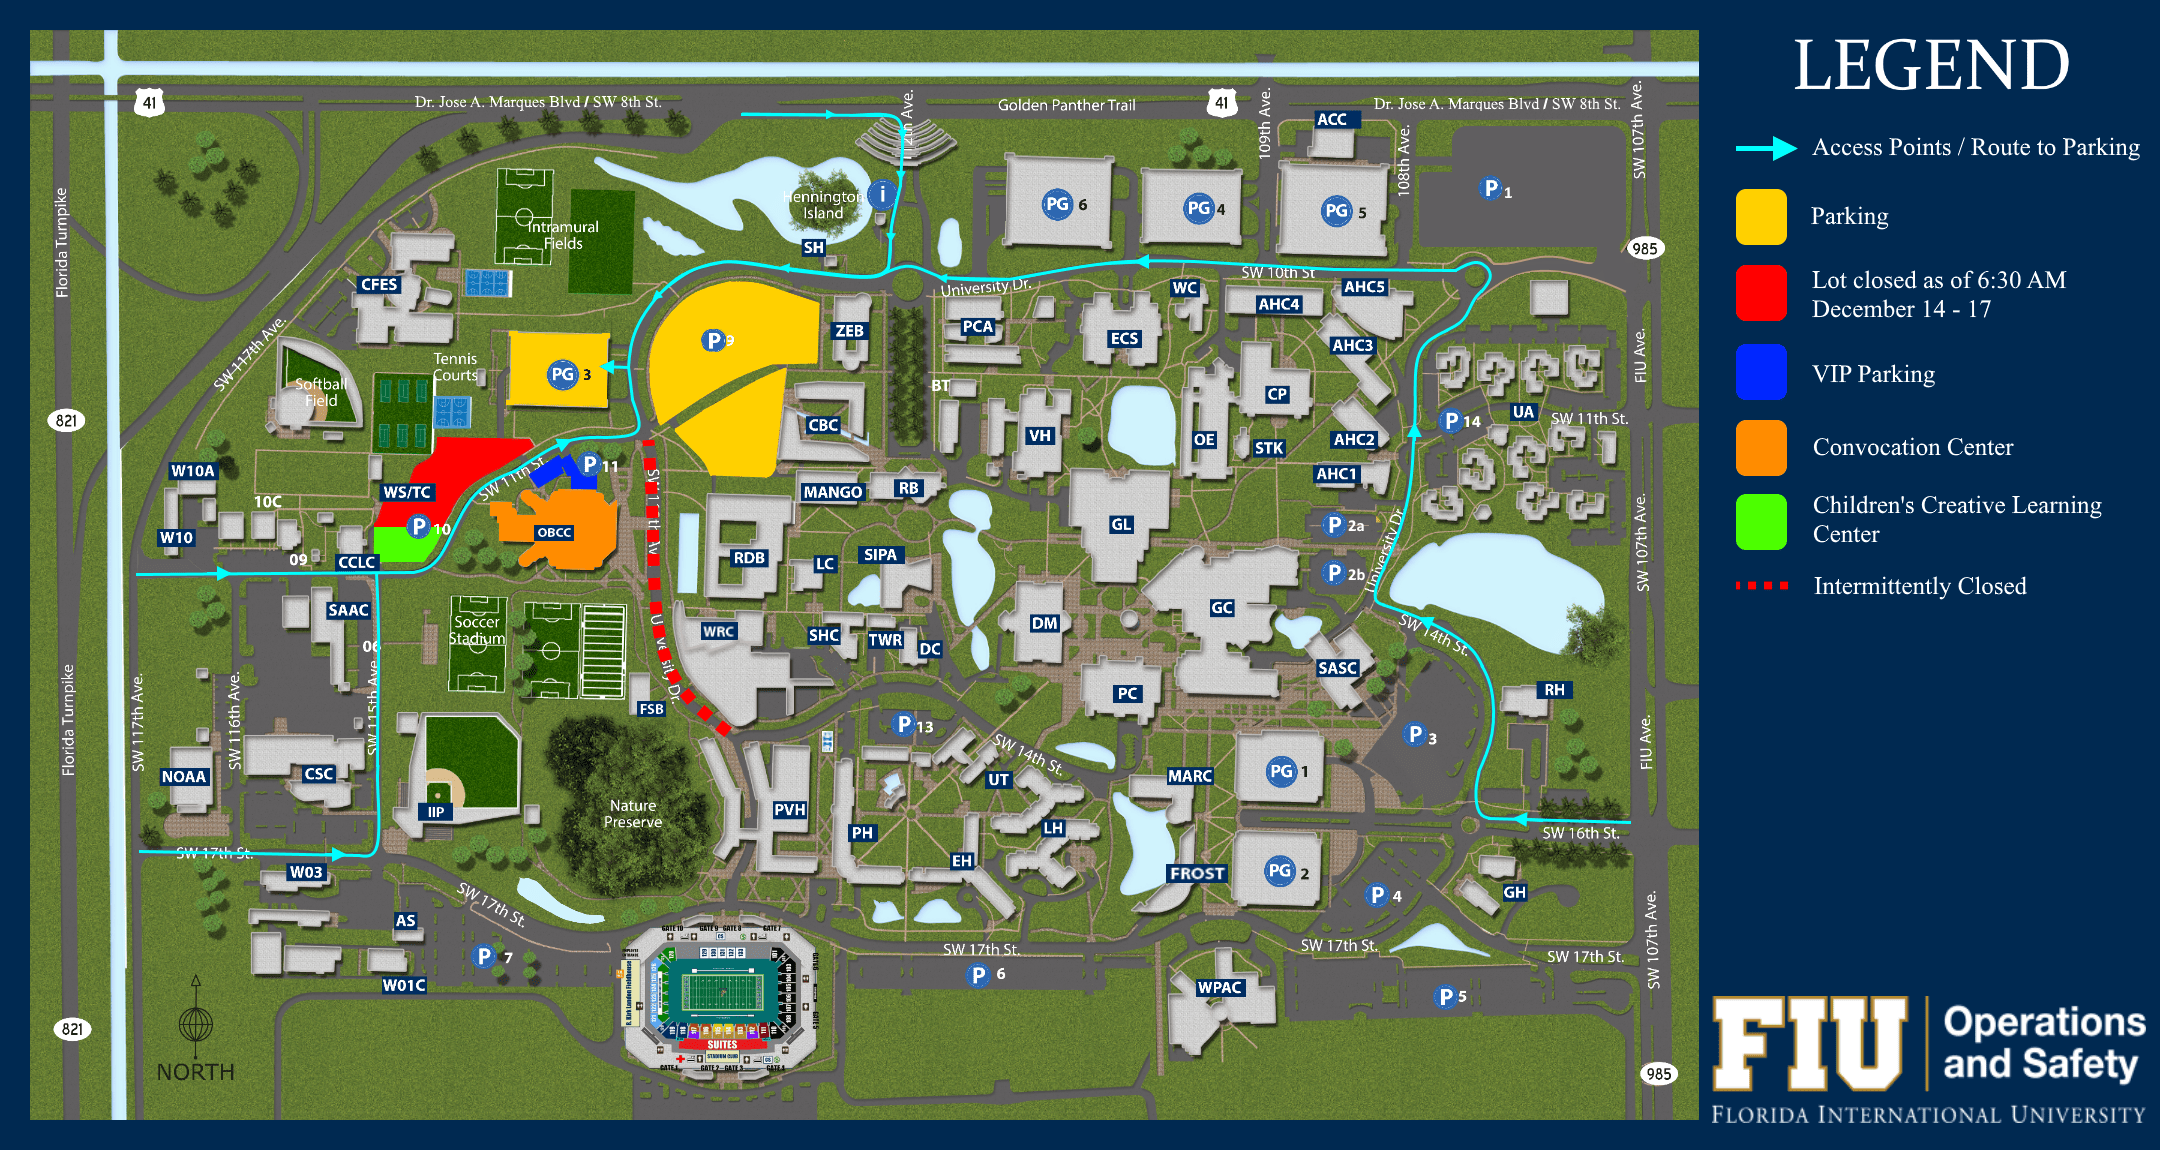 MMC Map depicting where to park for commencement